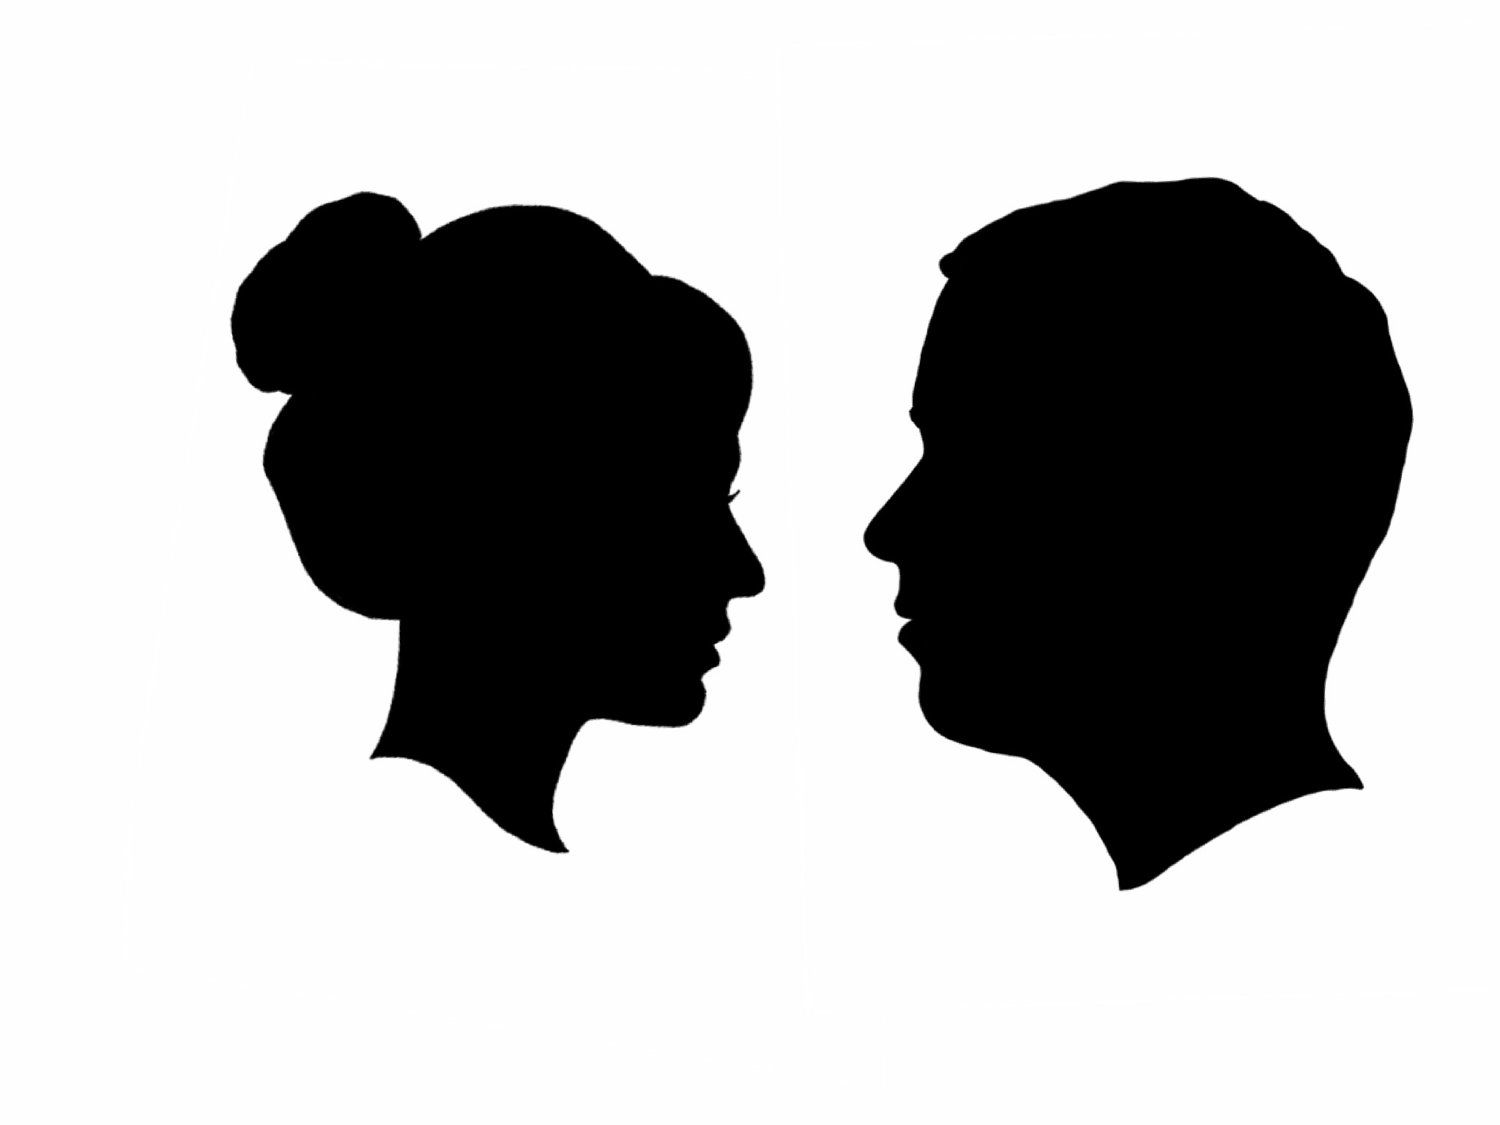 female head silhouette clipart free to use clip art resource shillouete heads pinterest silhouettes and clip art